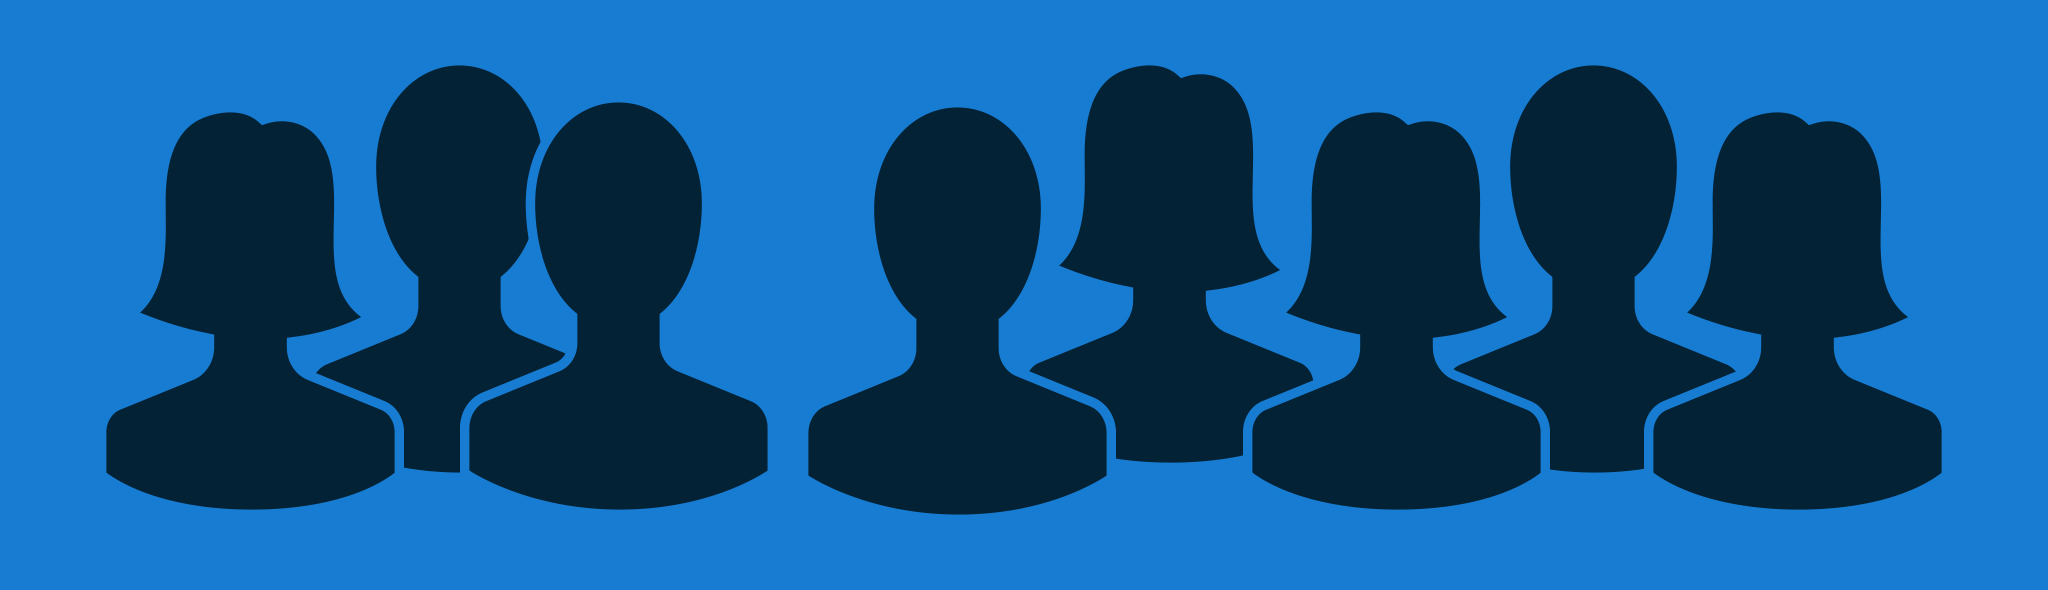 group of silhouette people icons